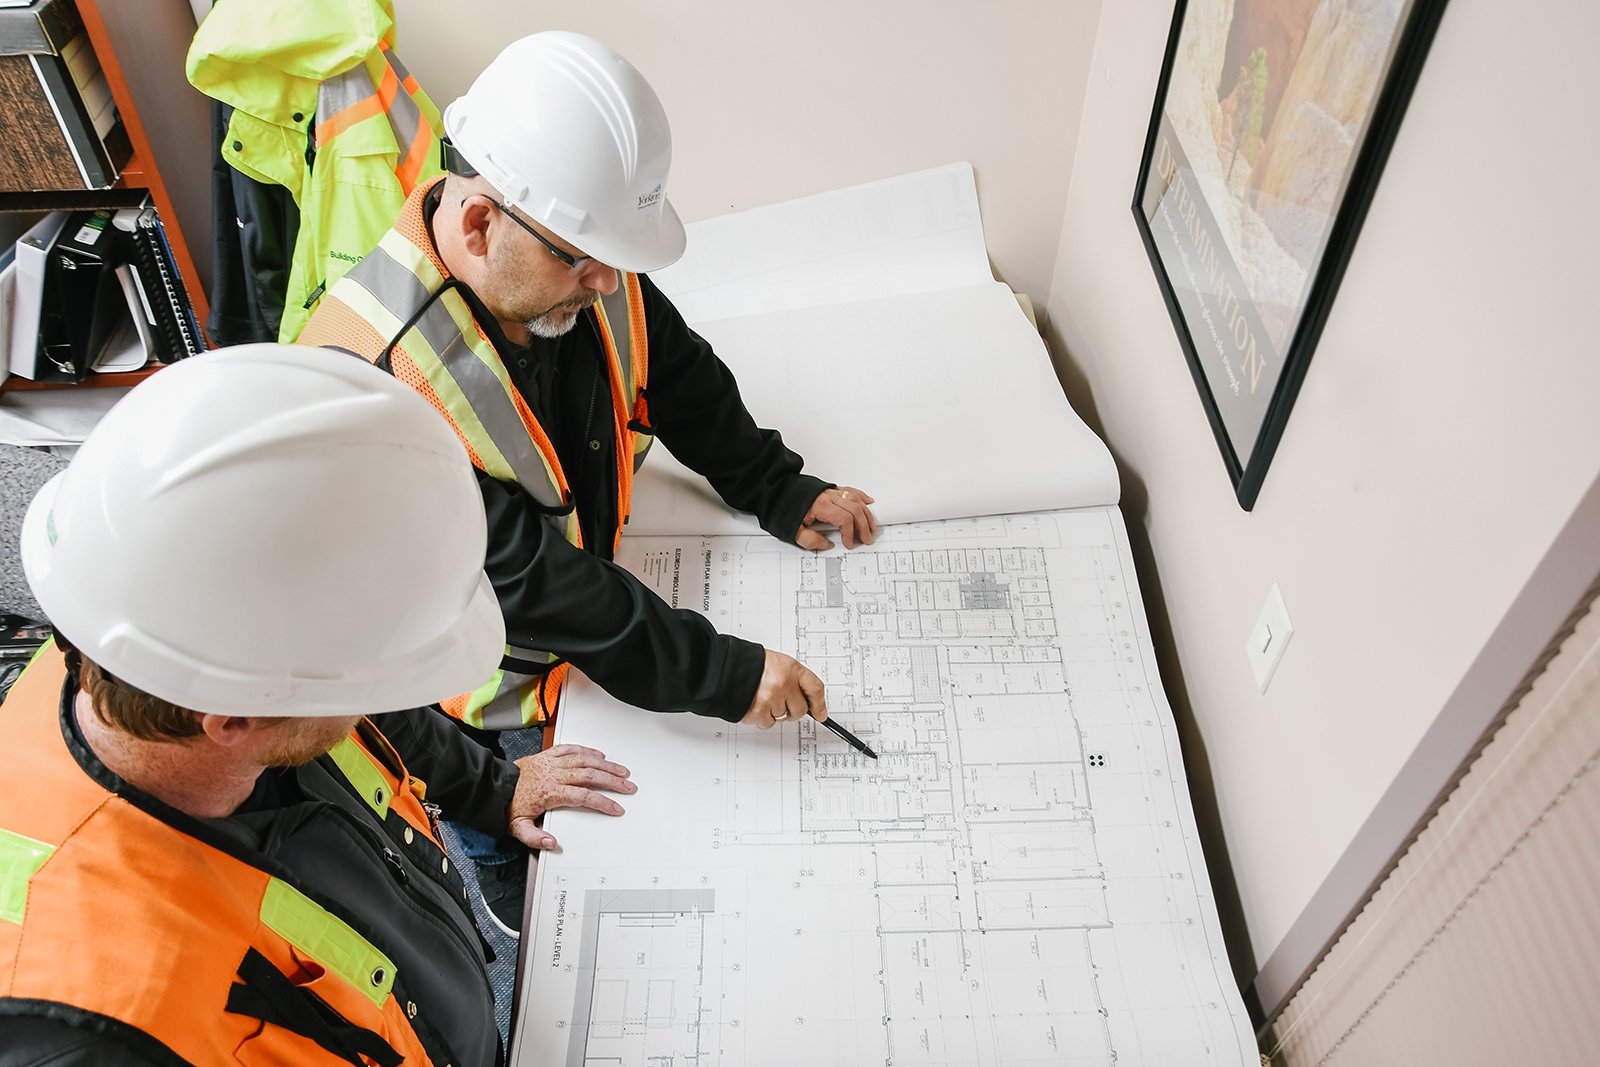 two people looking at construction plans